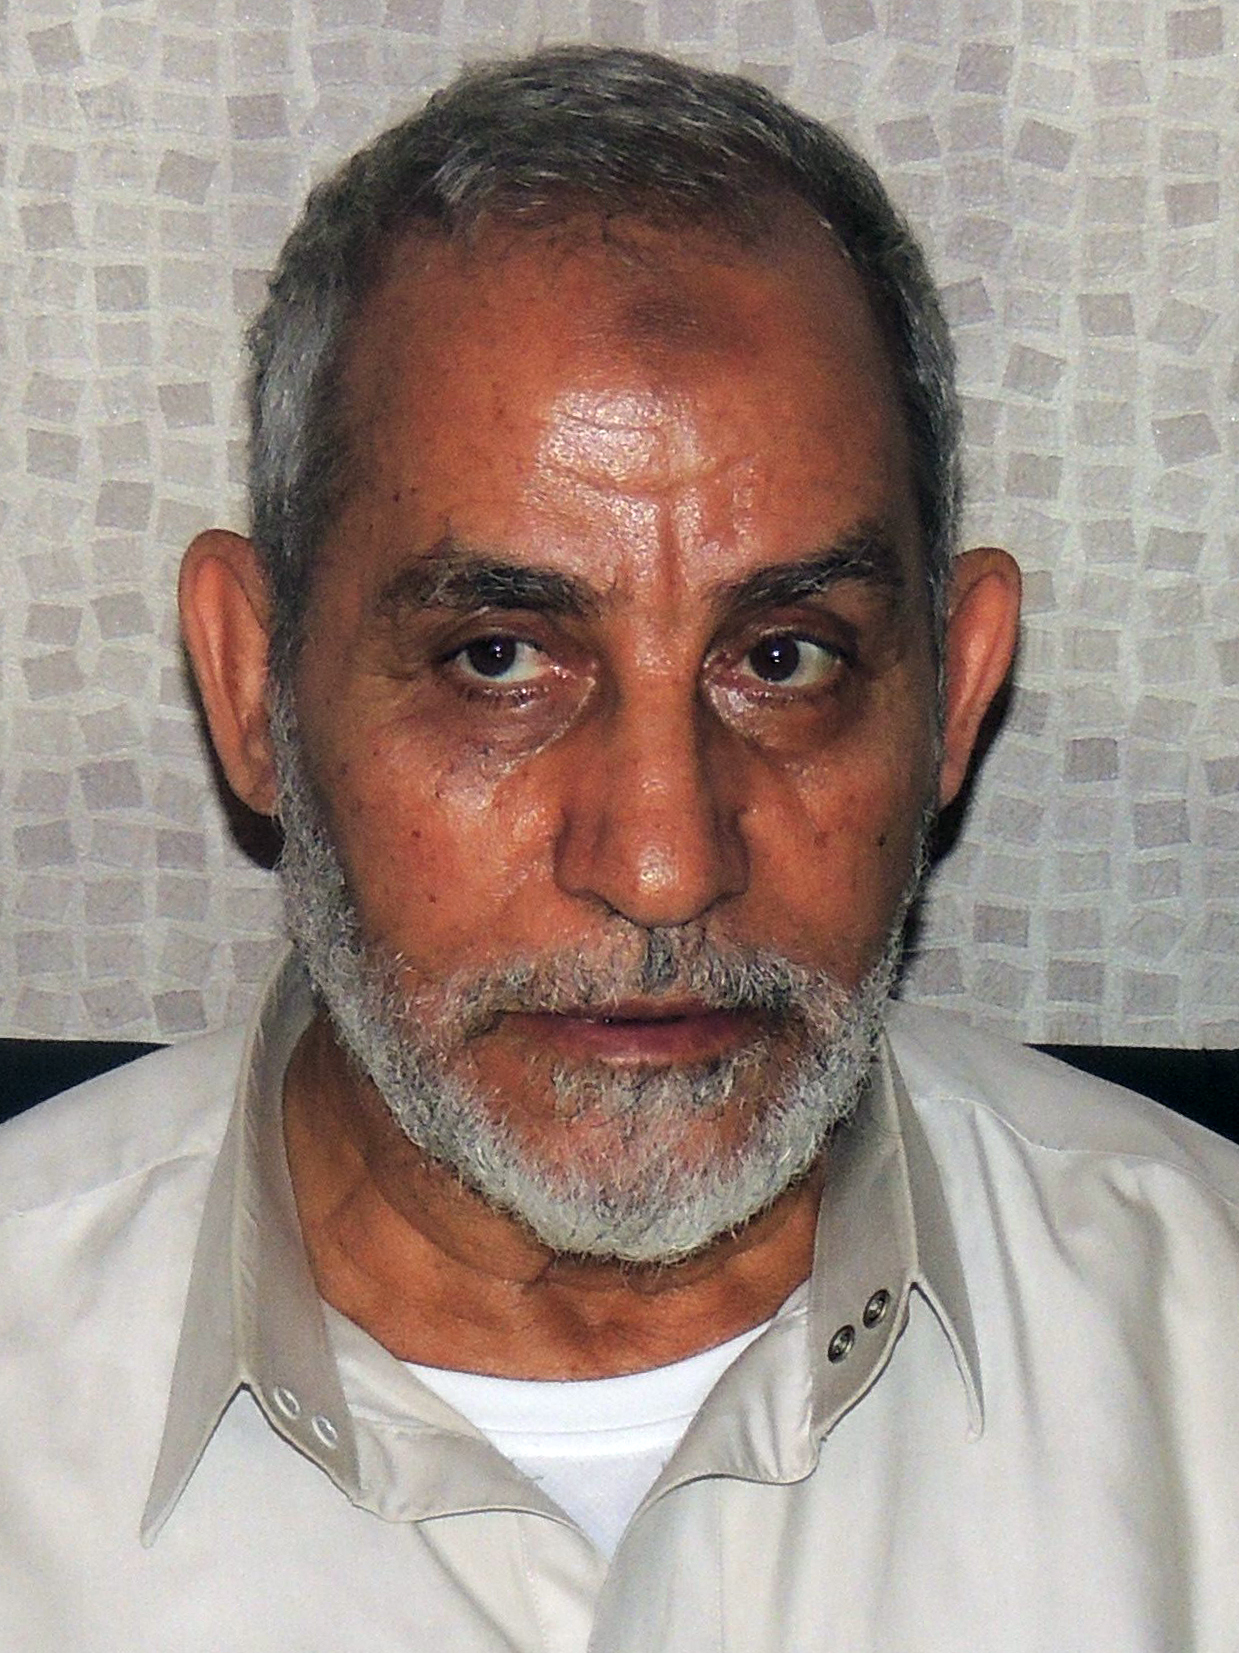 Mohamed Badie the supreme guide of the Muslim Brotherhood, following his arrest in the early hours of August 20, 2013 in Cairo's Nasr City district.  (AFP PHOTO)